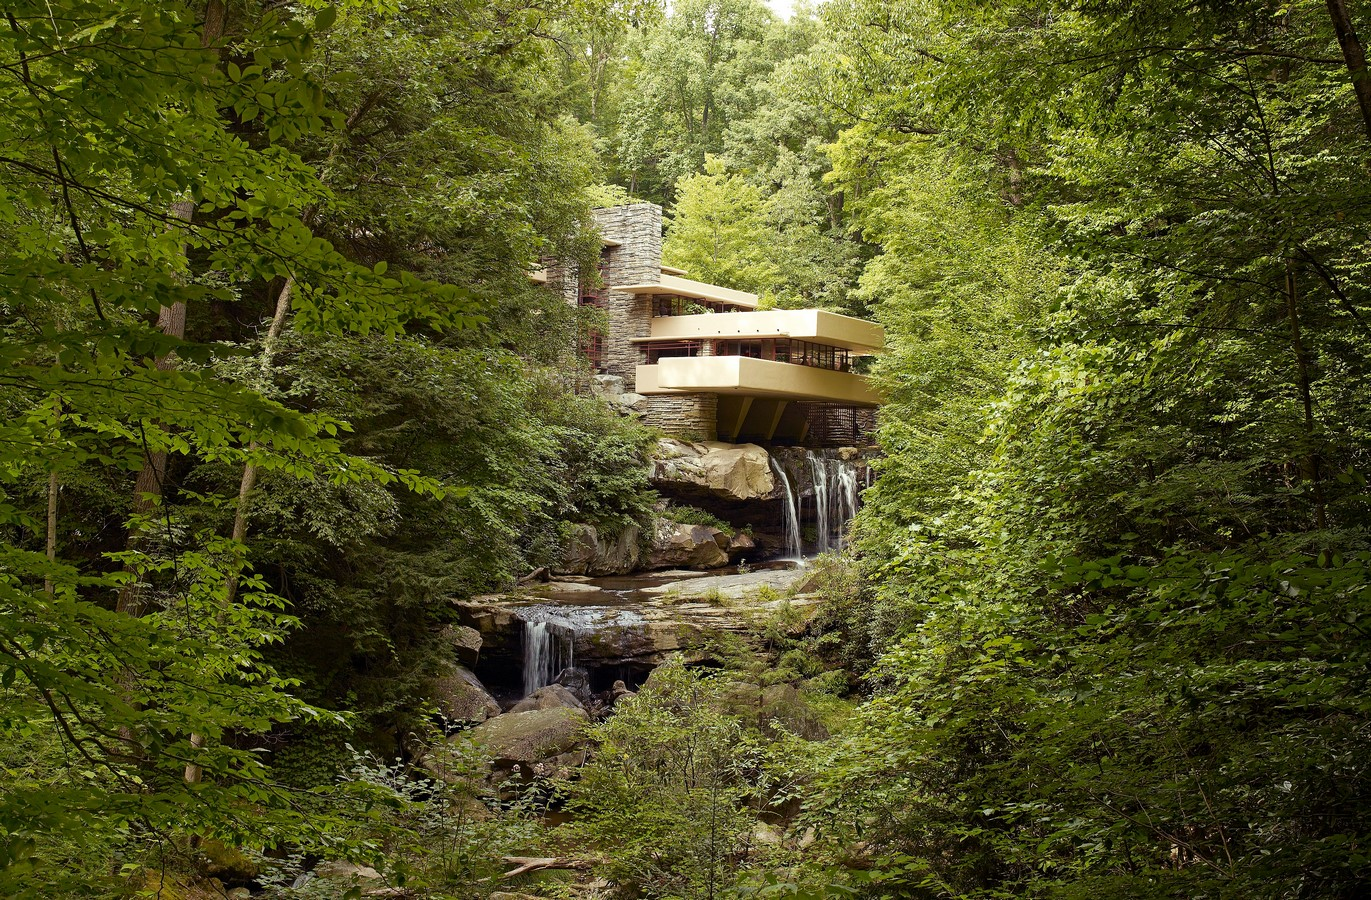 10 Things you did not know about Organic architecture - Sheet1